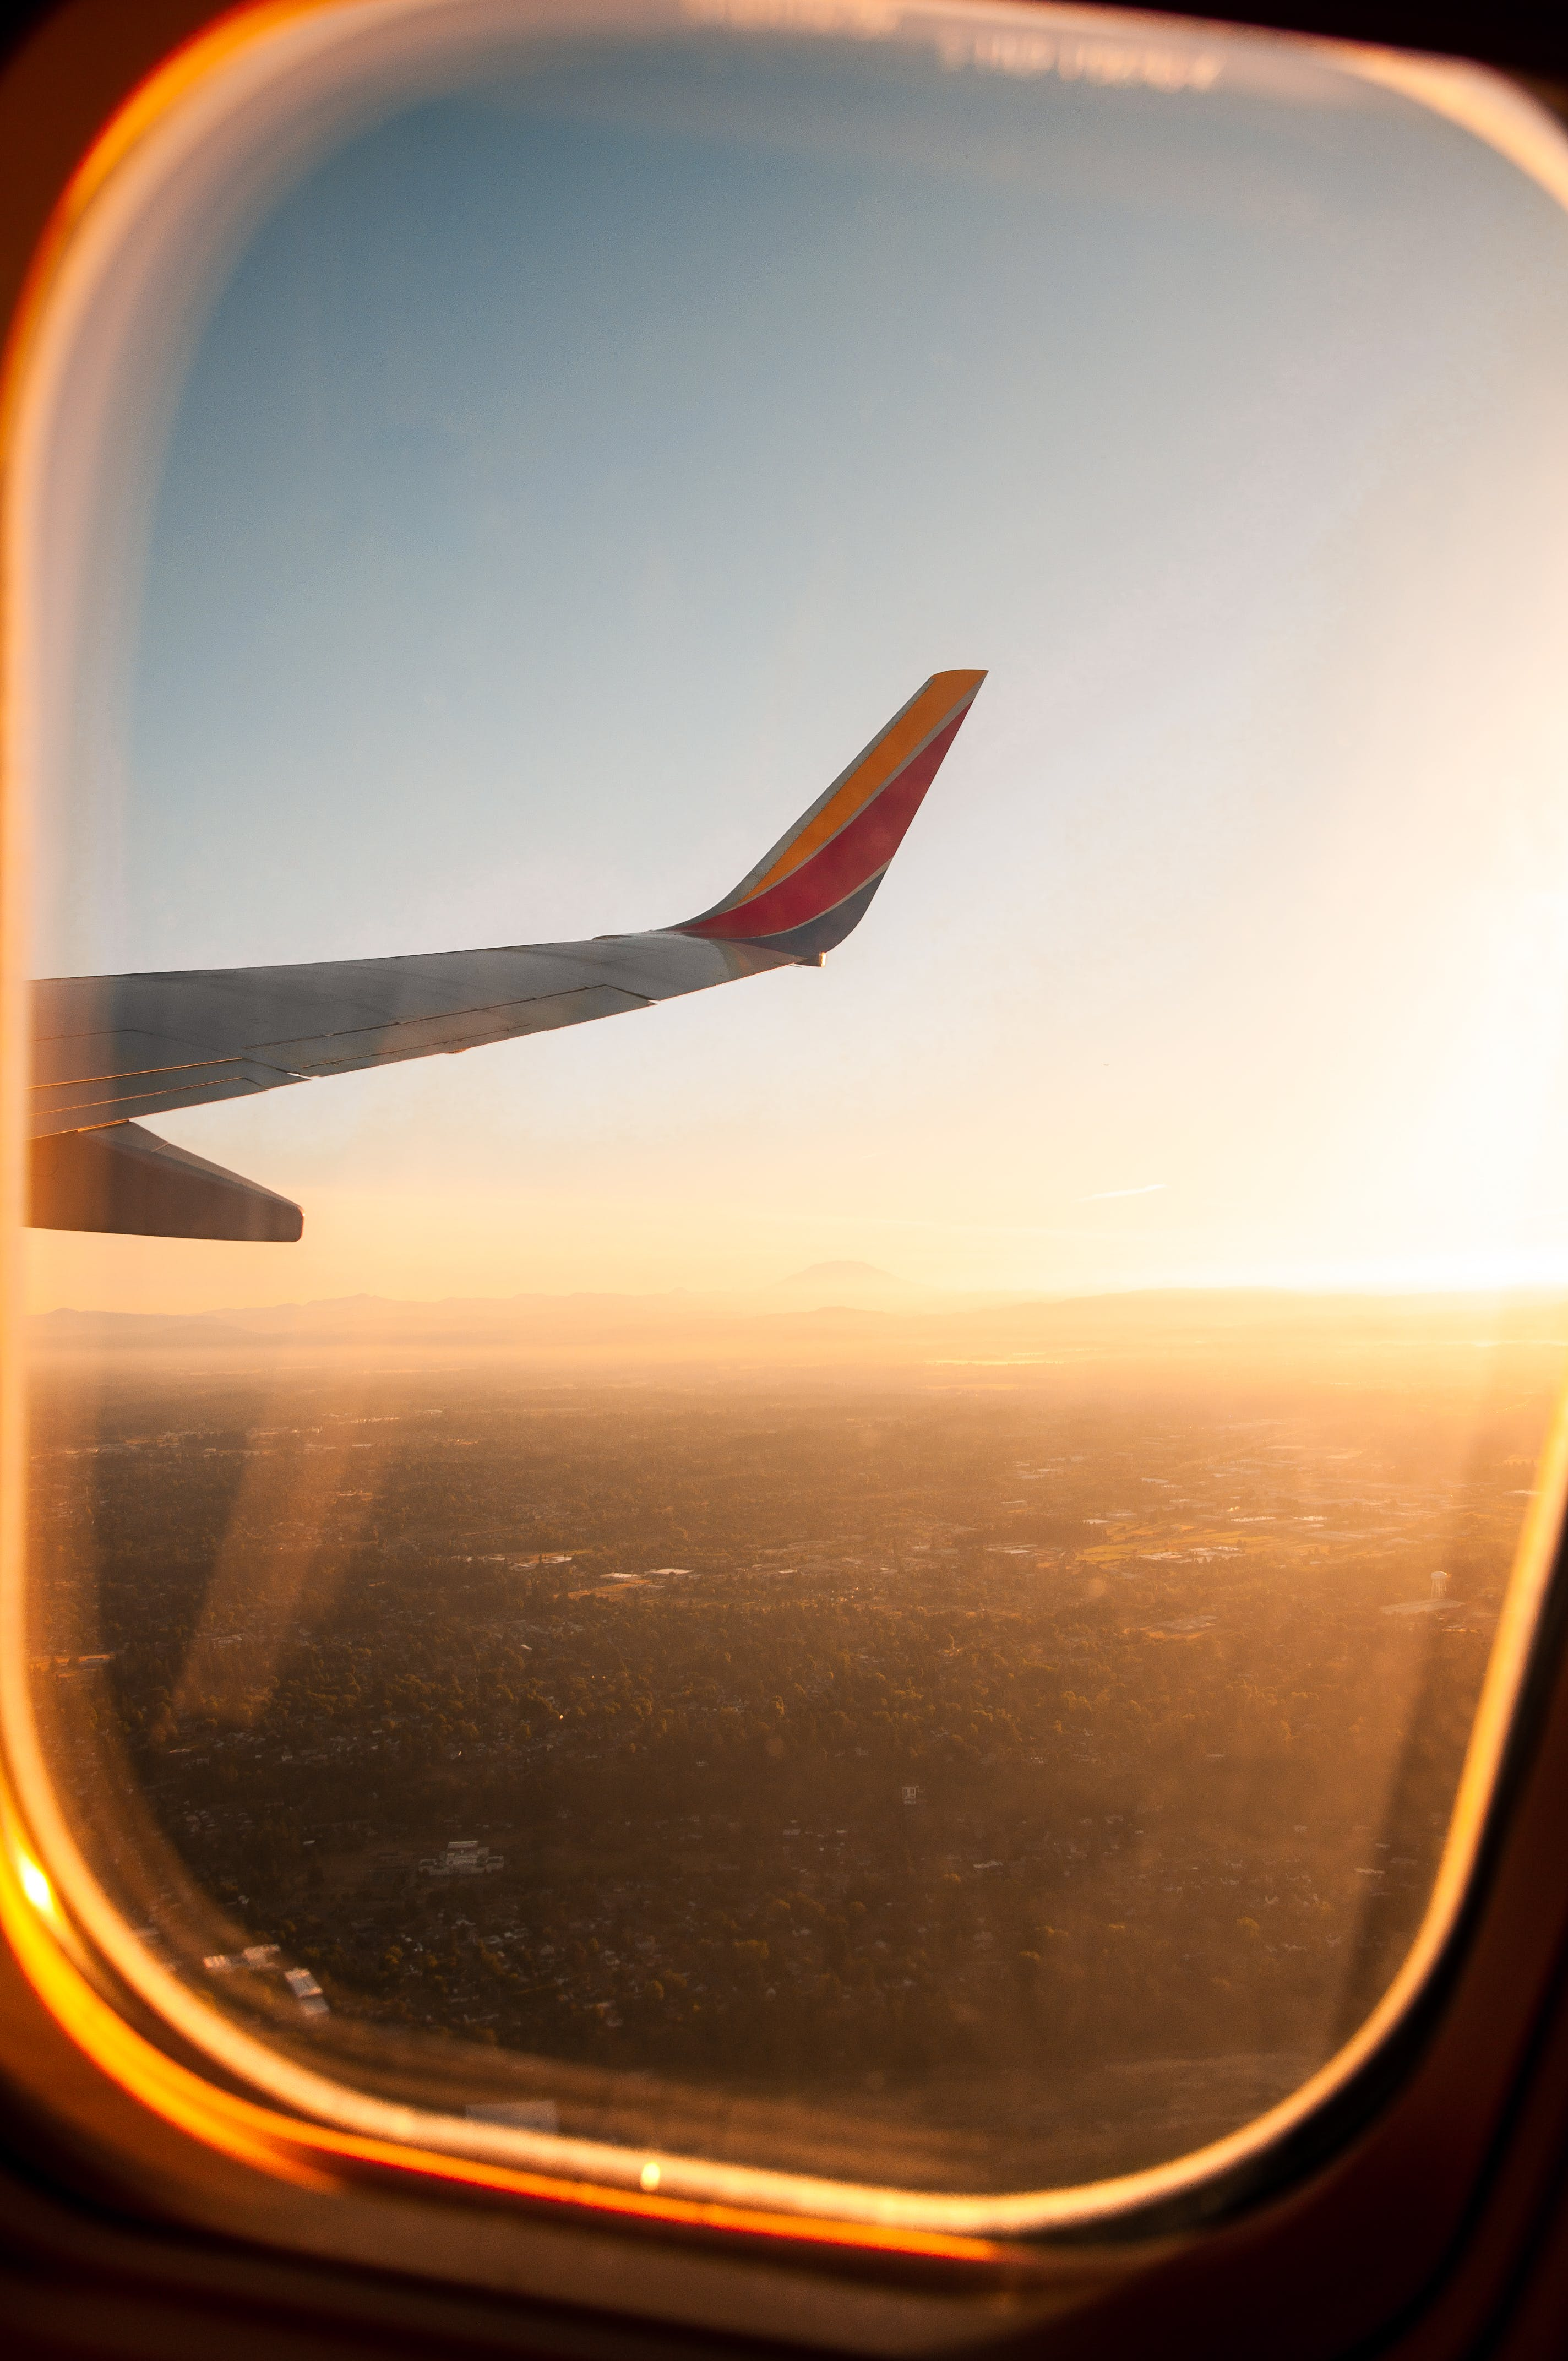 Aerial Photography from Plane Window